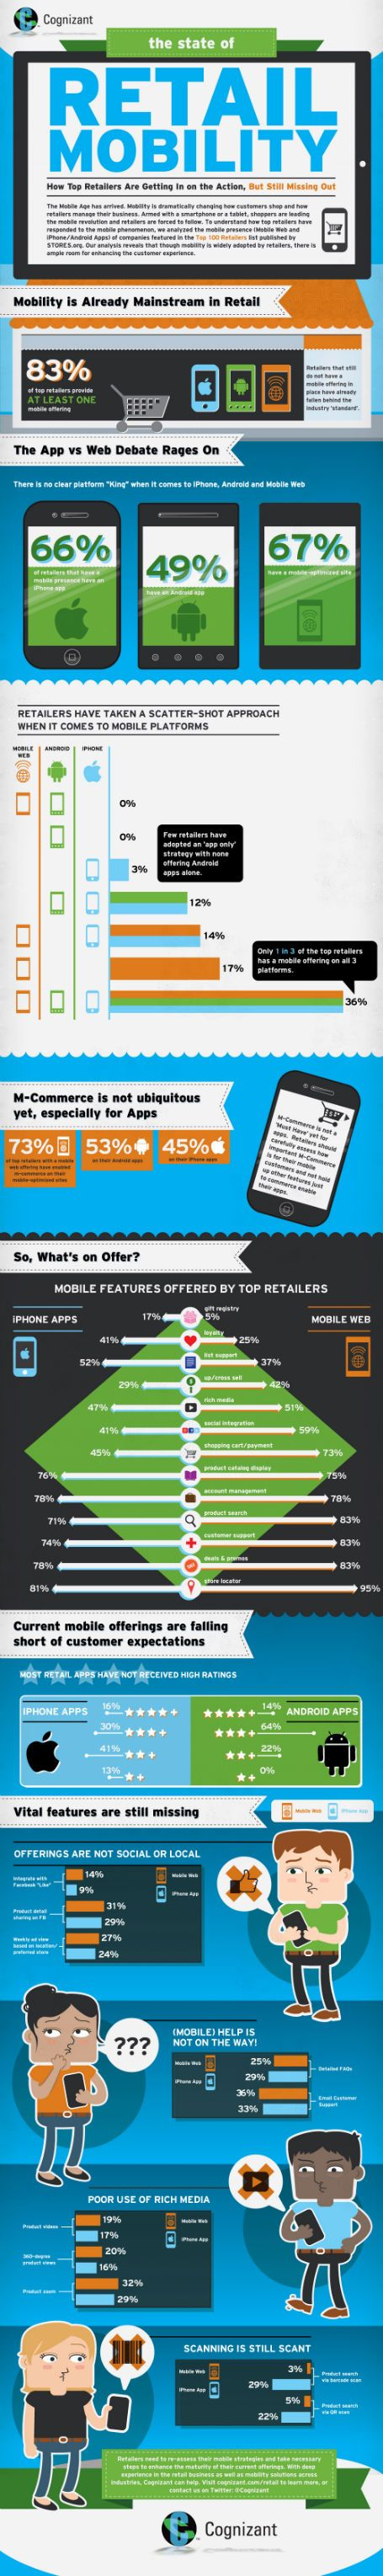 Cognizant analyzed the mobile web and app offerings of the top 100 retailers. Here is what we found about the current state of mobility in retail (infographic).